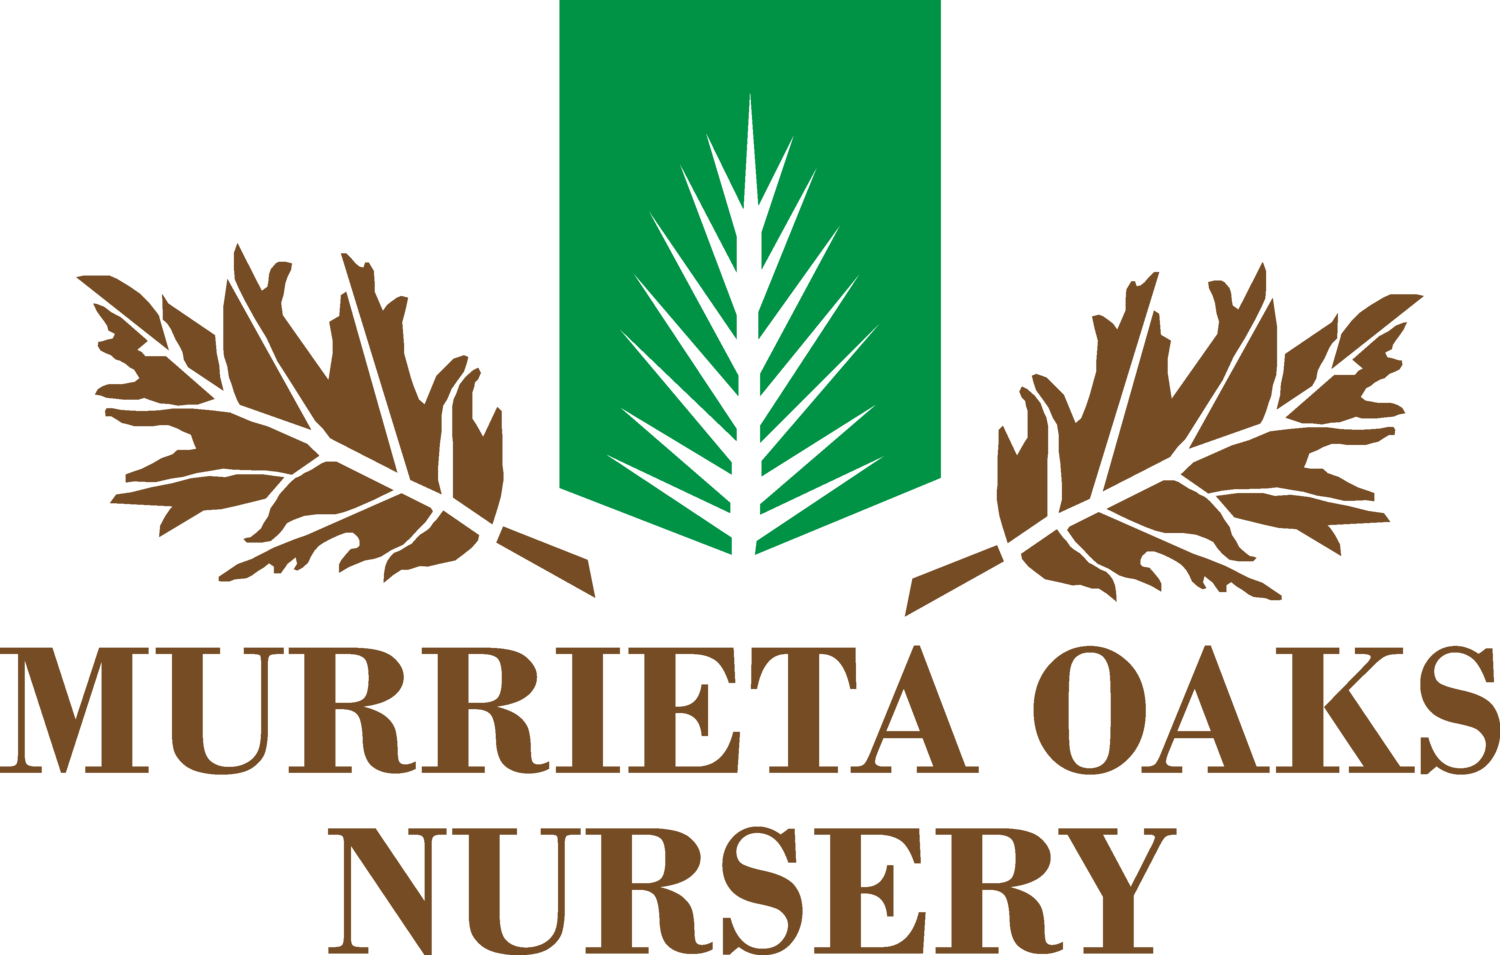 Murrieta Oaks Nursery